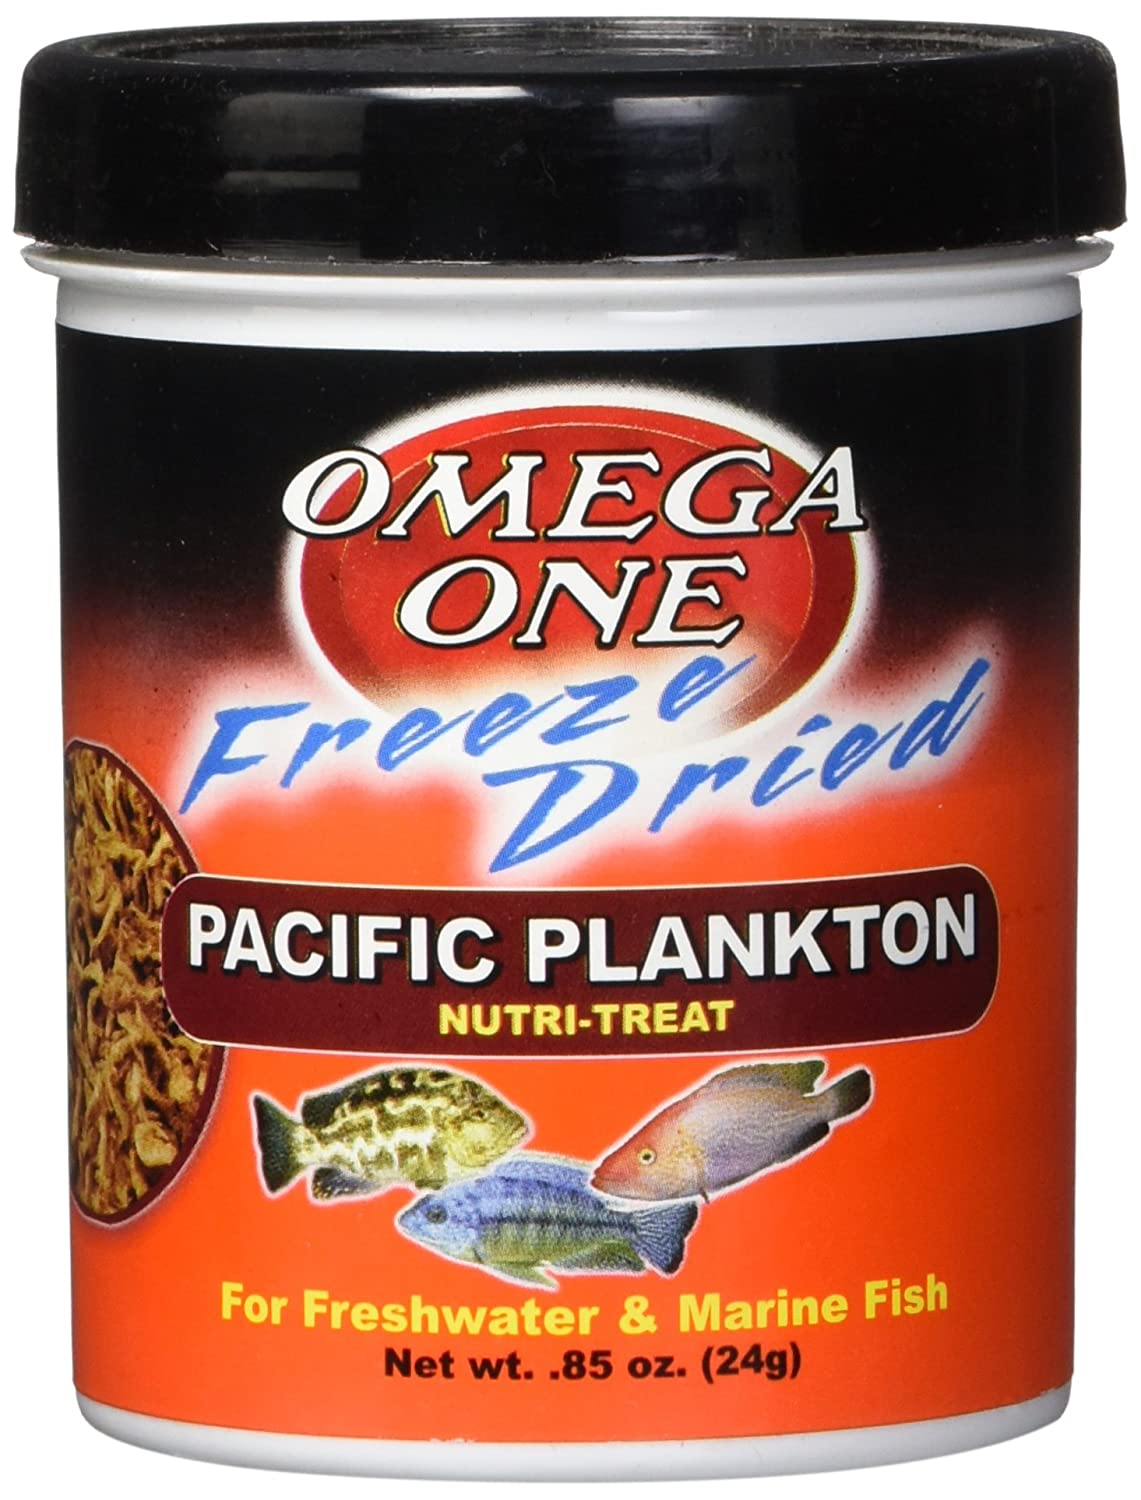 Omega One Freeze Dried Pacific Plankton 0.85 Oz by Omega One B008UWJ4PW